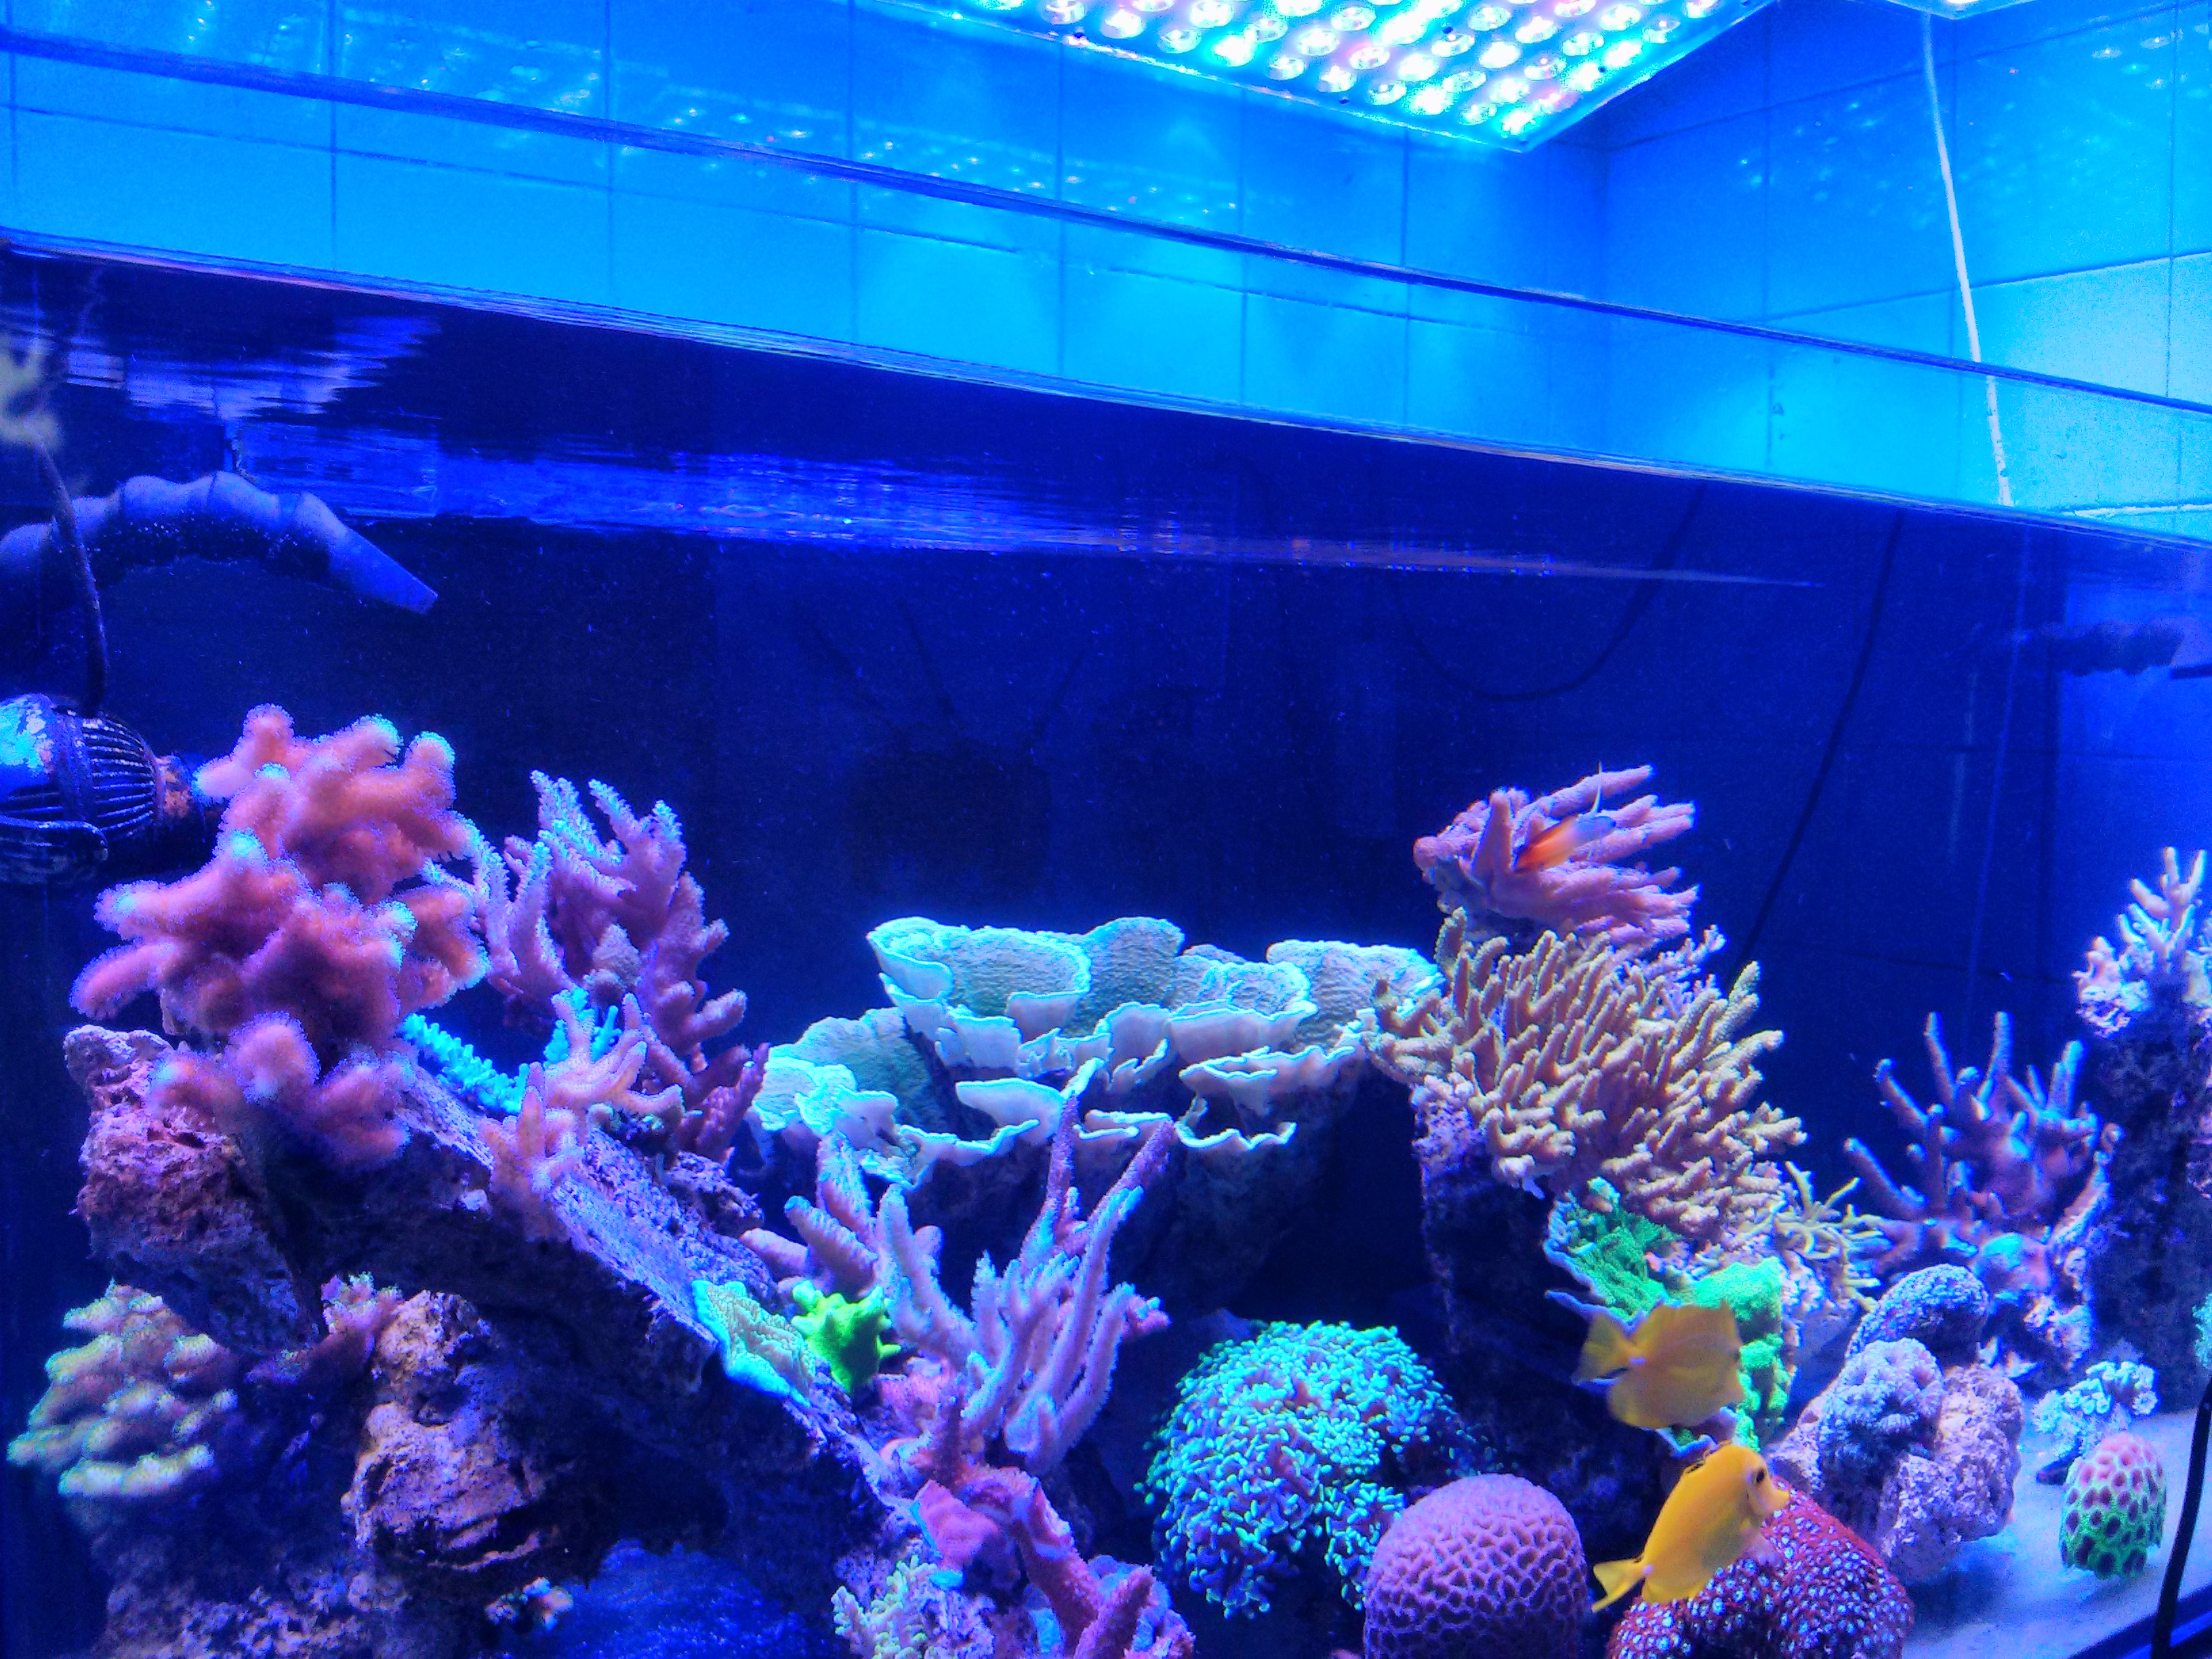 PAR aquarium LED lighting